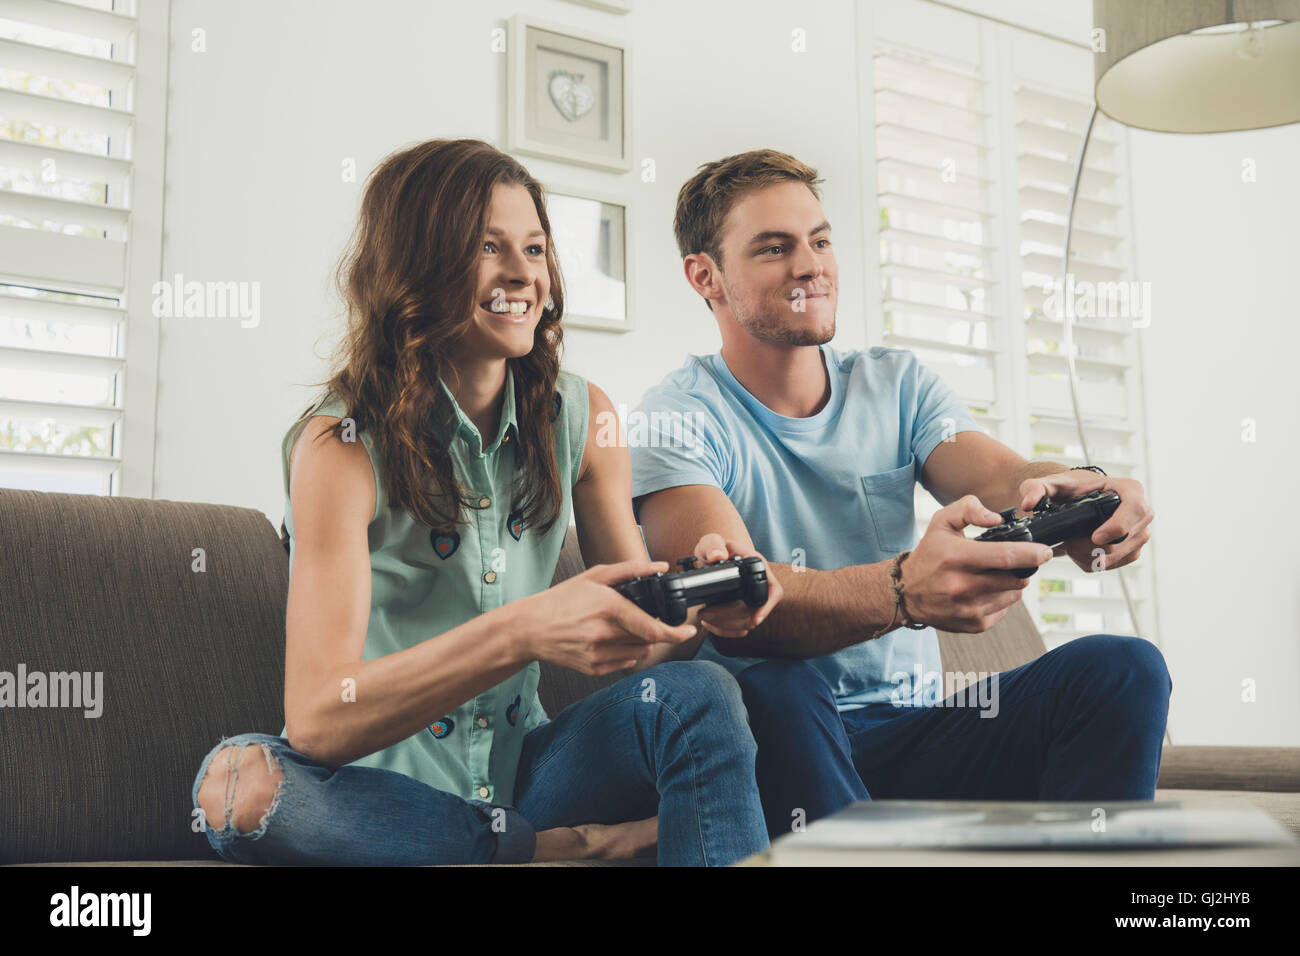 Couple on sofa using video game controller smiling - Stock Image